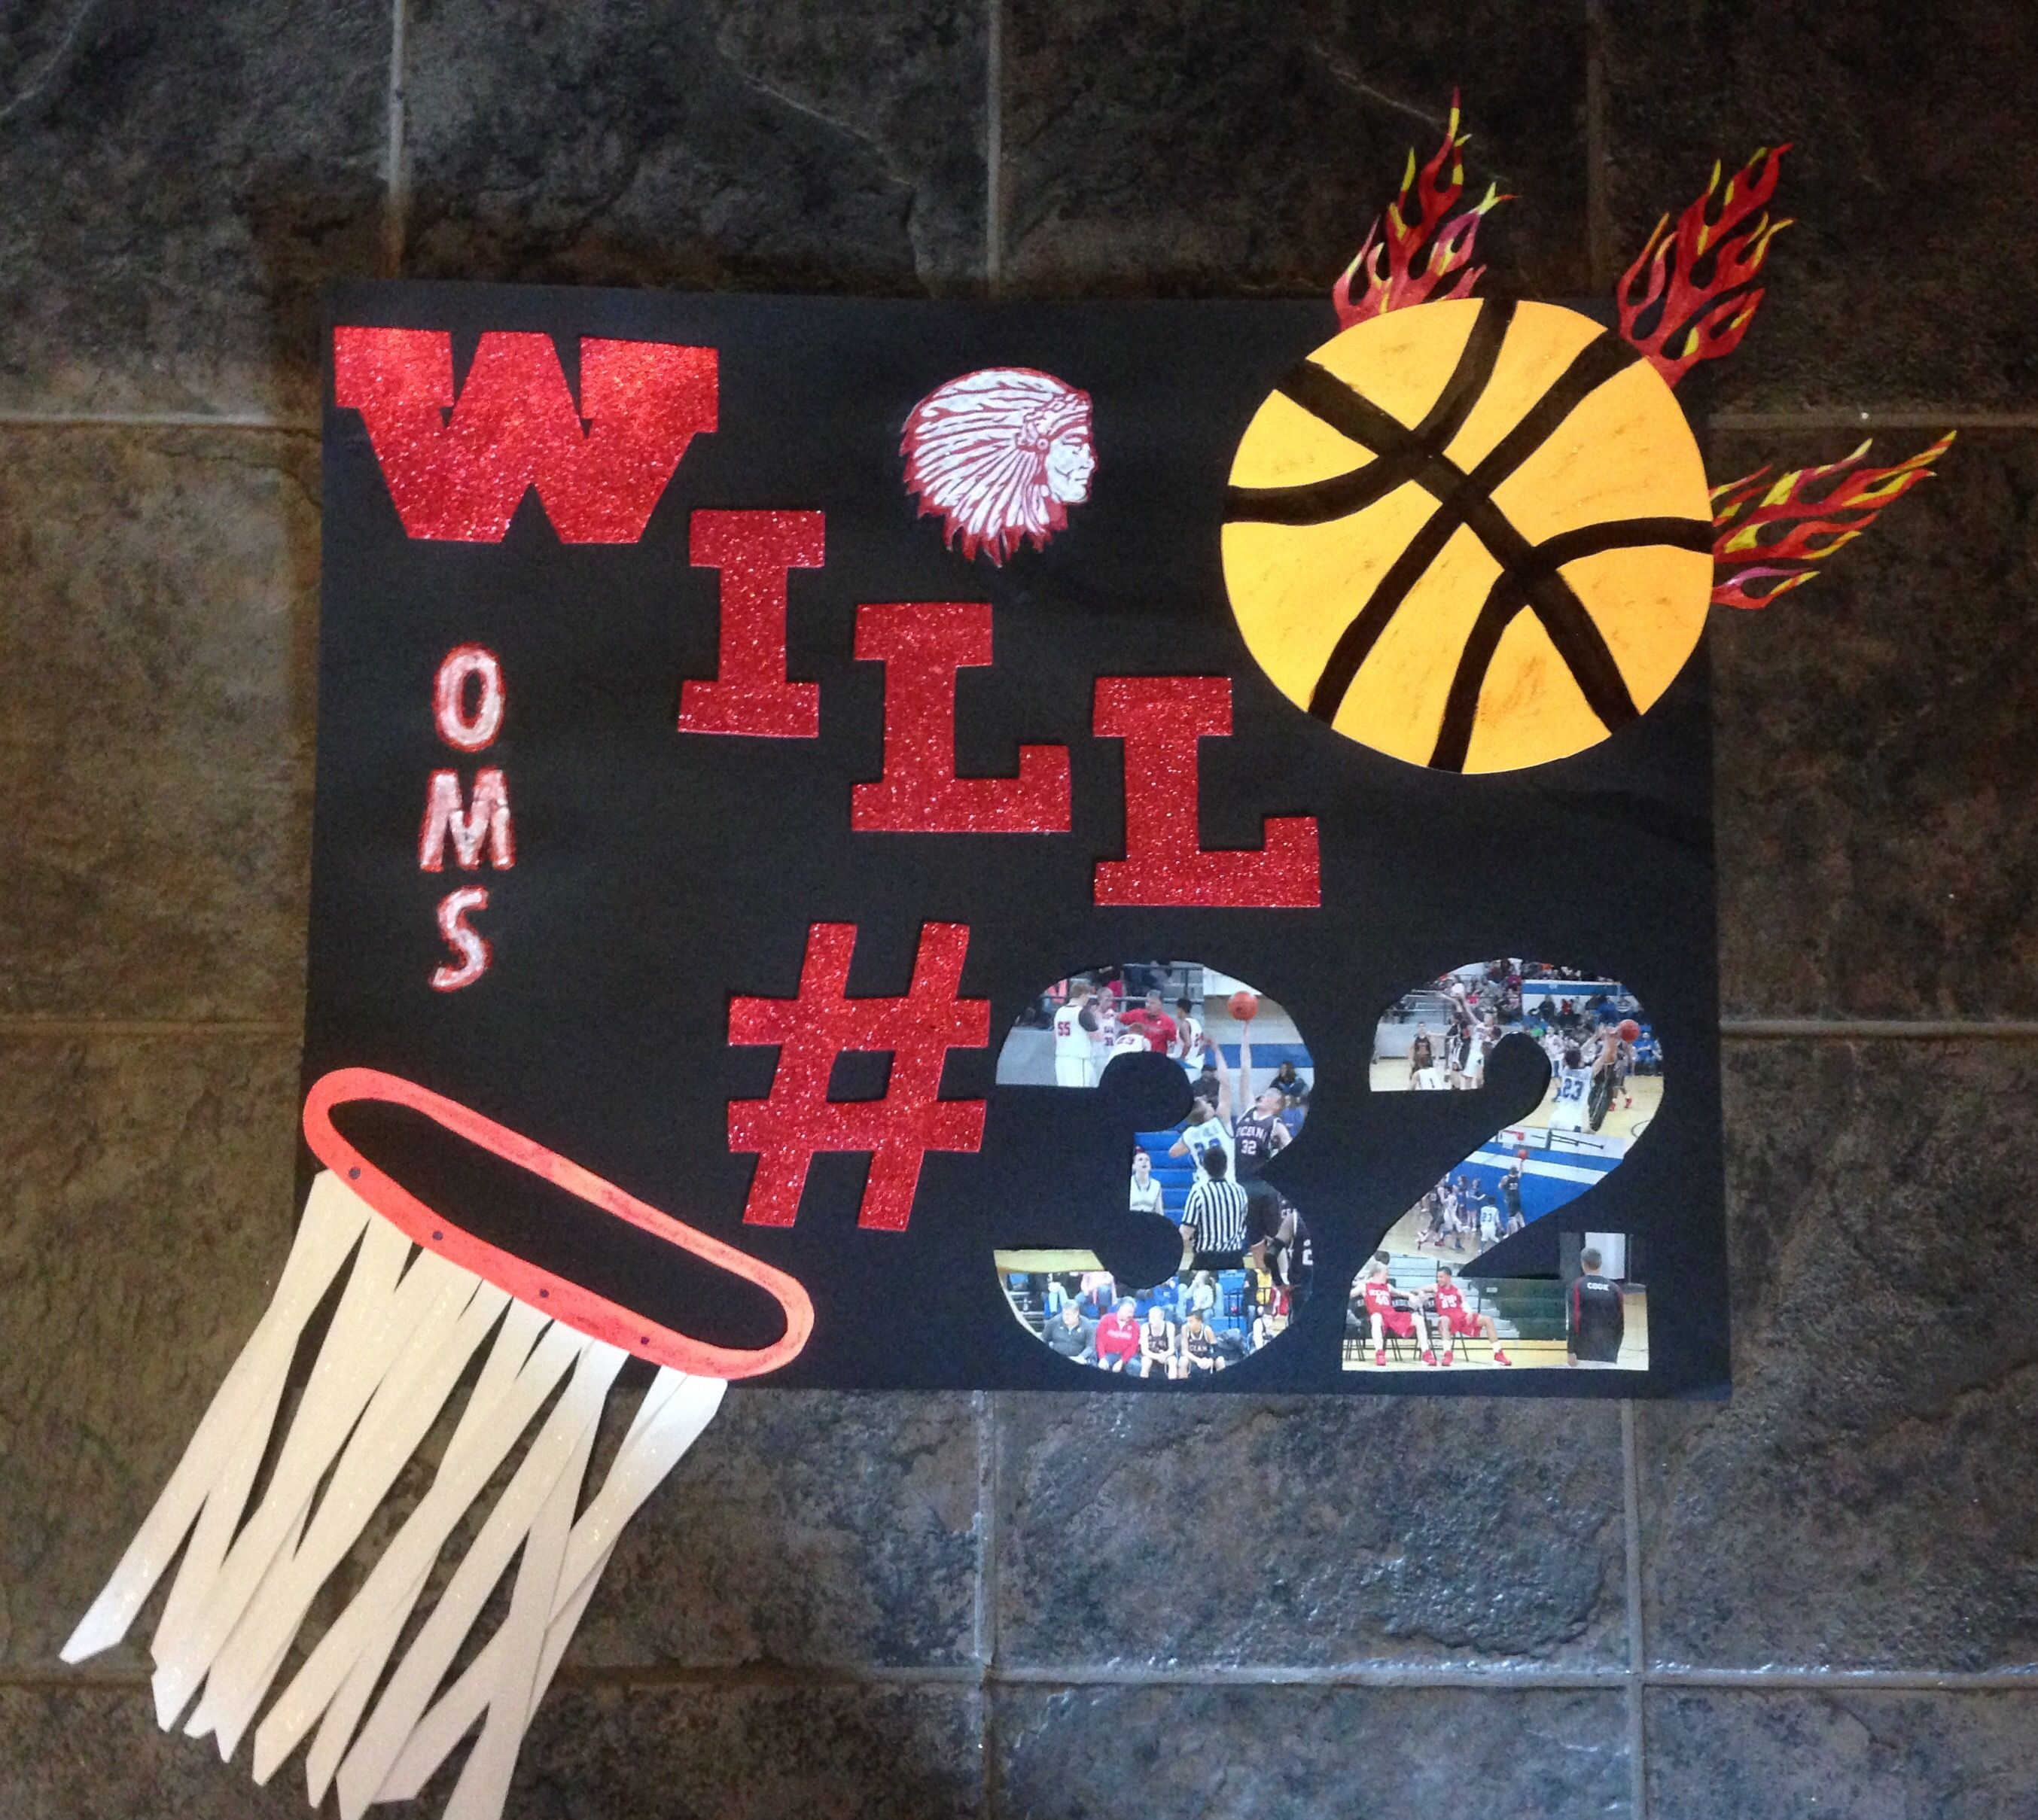 25 Best Ideas About Basketball Decorations On Pinterest: 8th Grade Night Basketball Poster